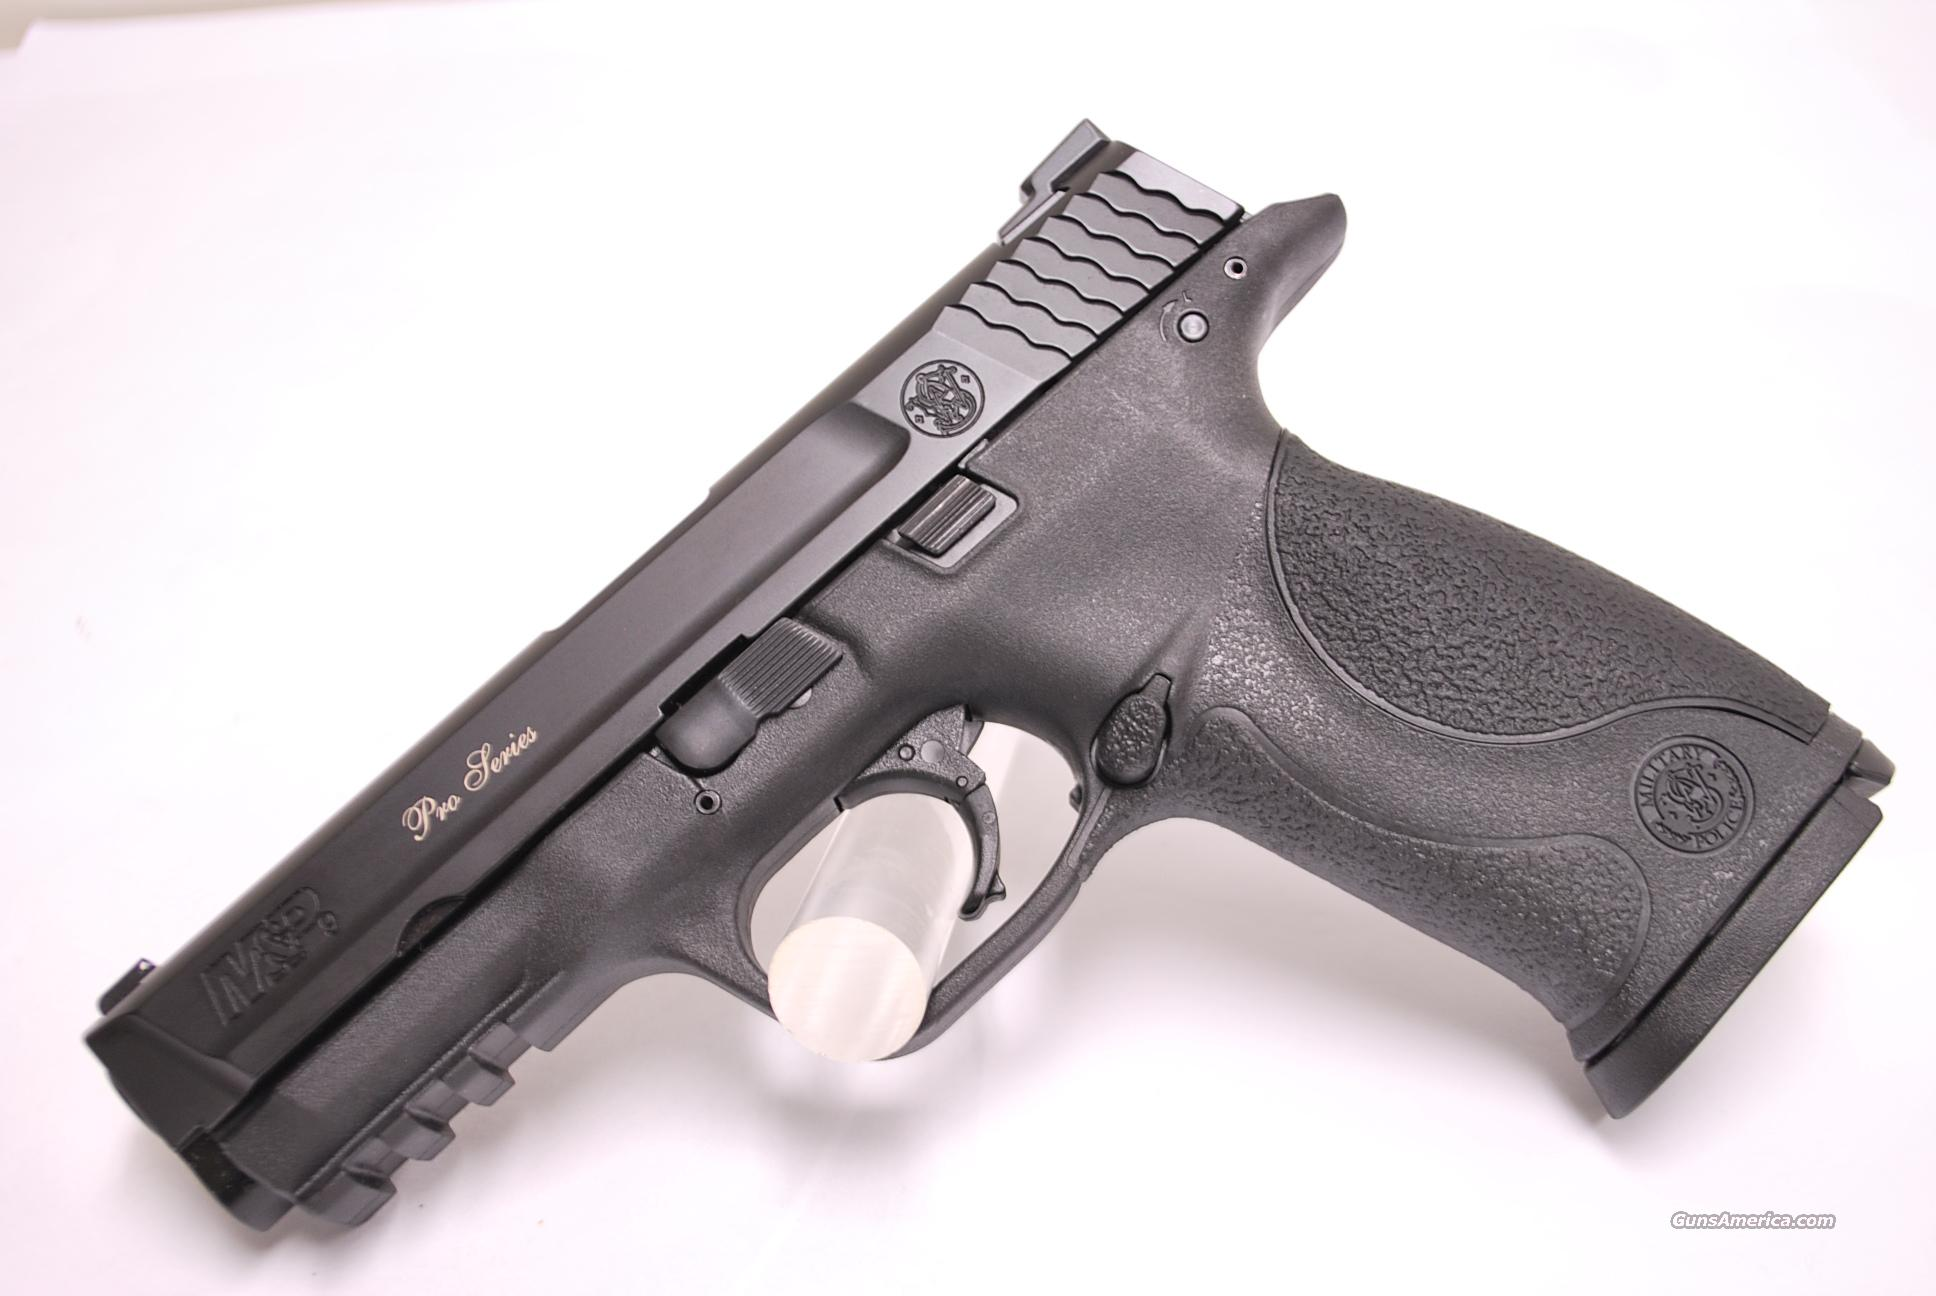 Smith and Wesson M&P9 Pro Series NEW 9mm Night Sights  Guns > Pistols > Smith & Wesson Pistols - Autos > Polymer Frame